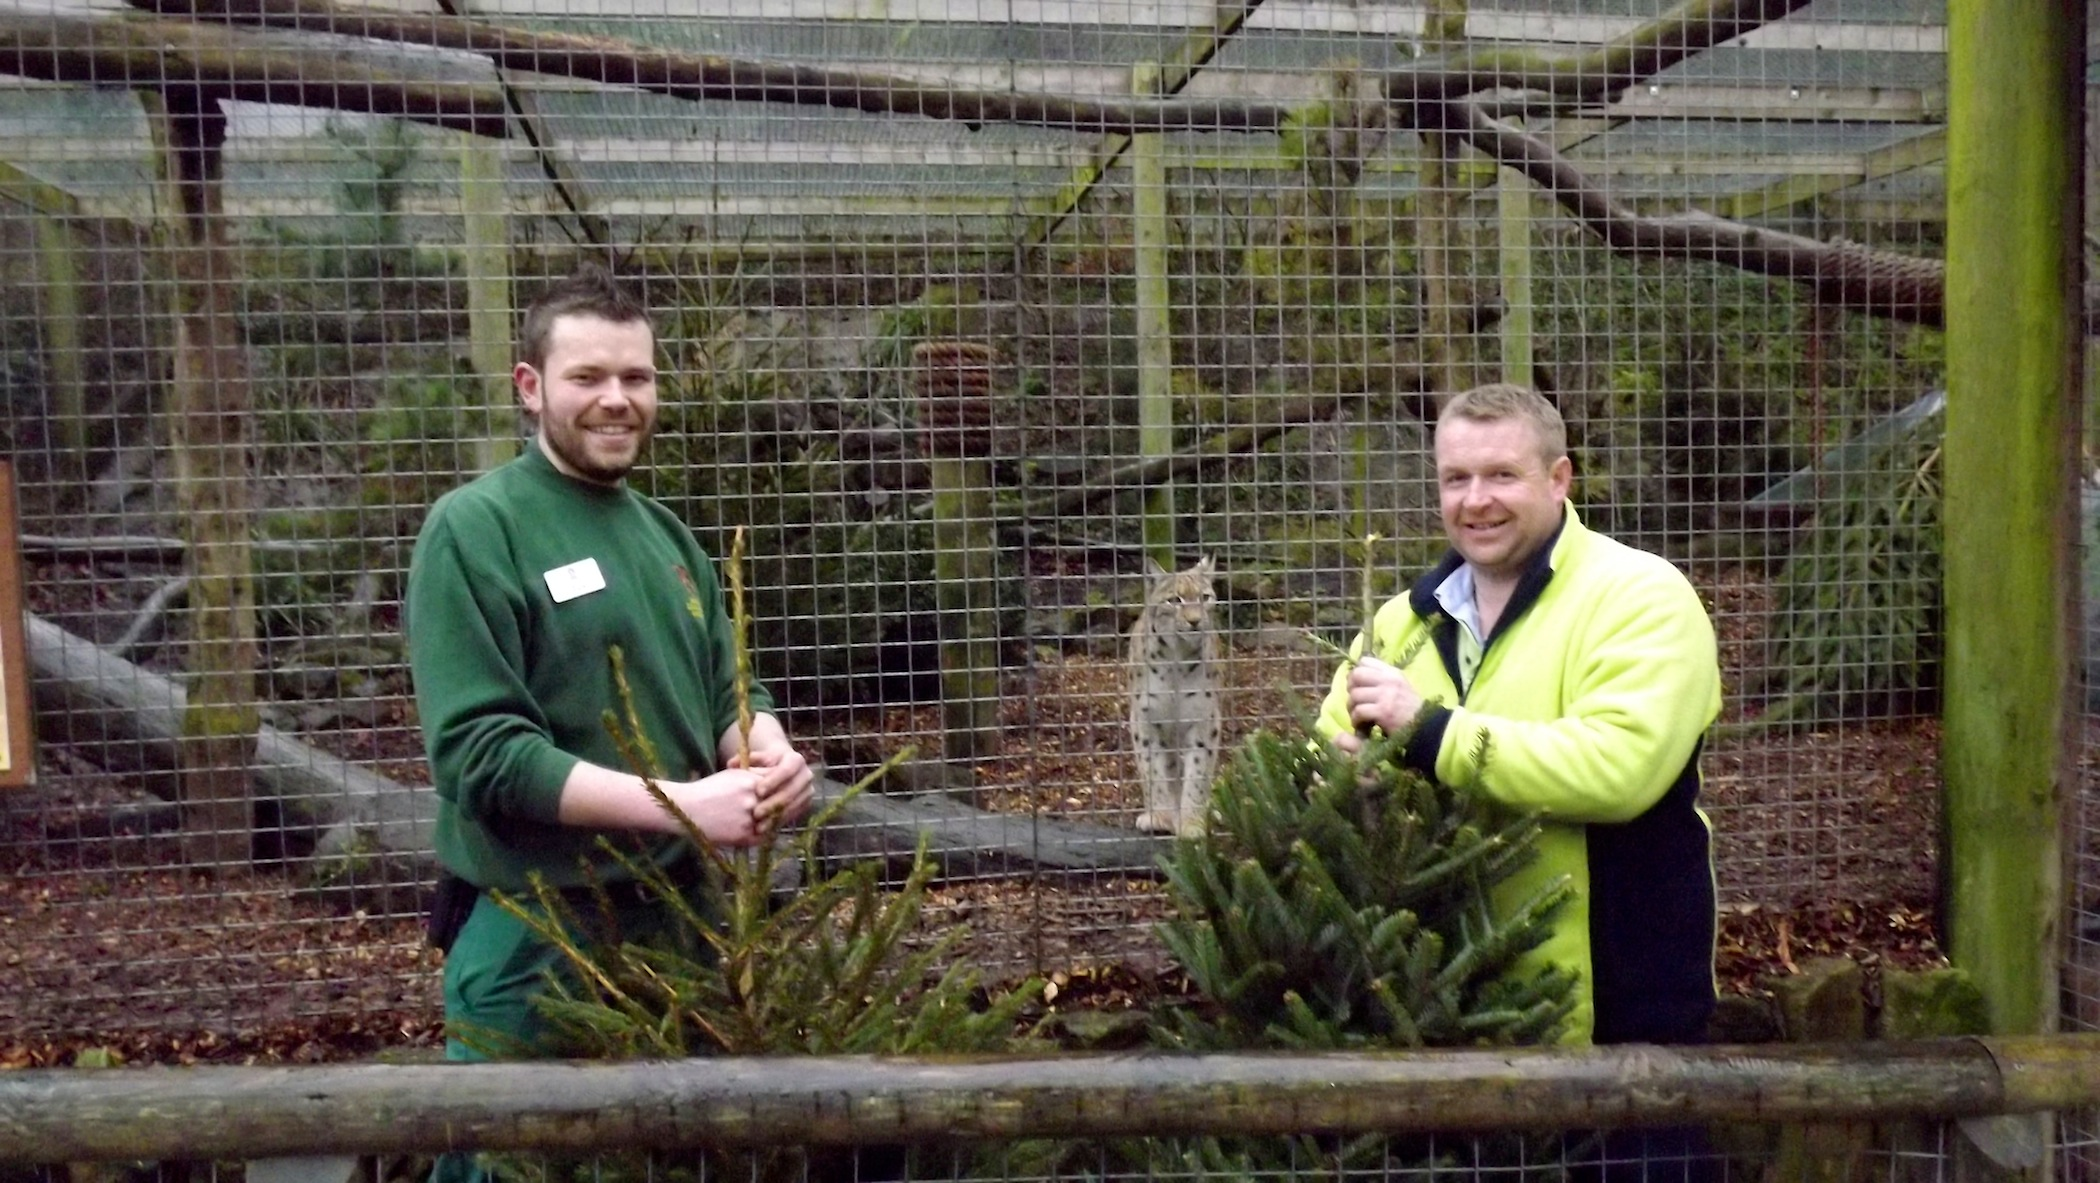 l-r Jay Haywood (zoo keeper) and Nigel Summerfield (acting plant manager).